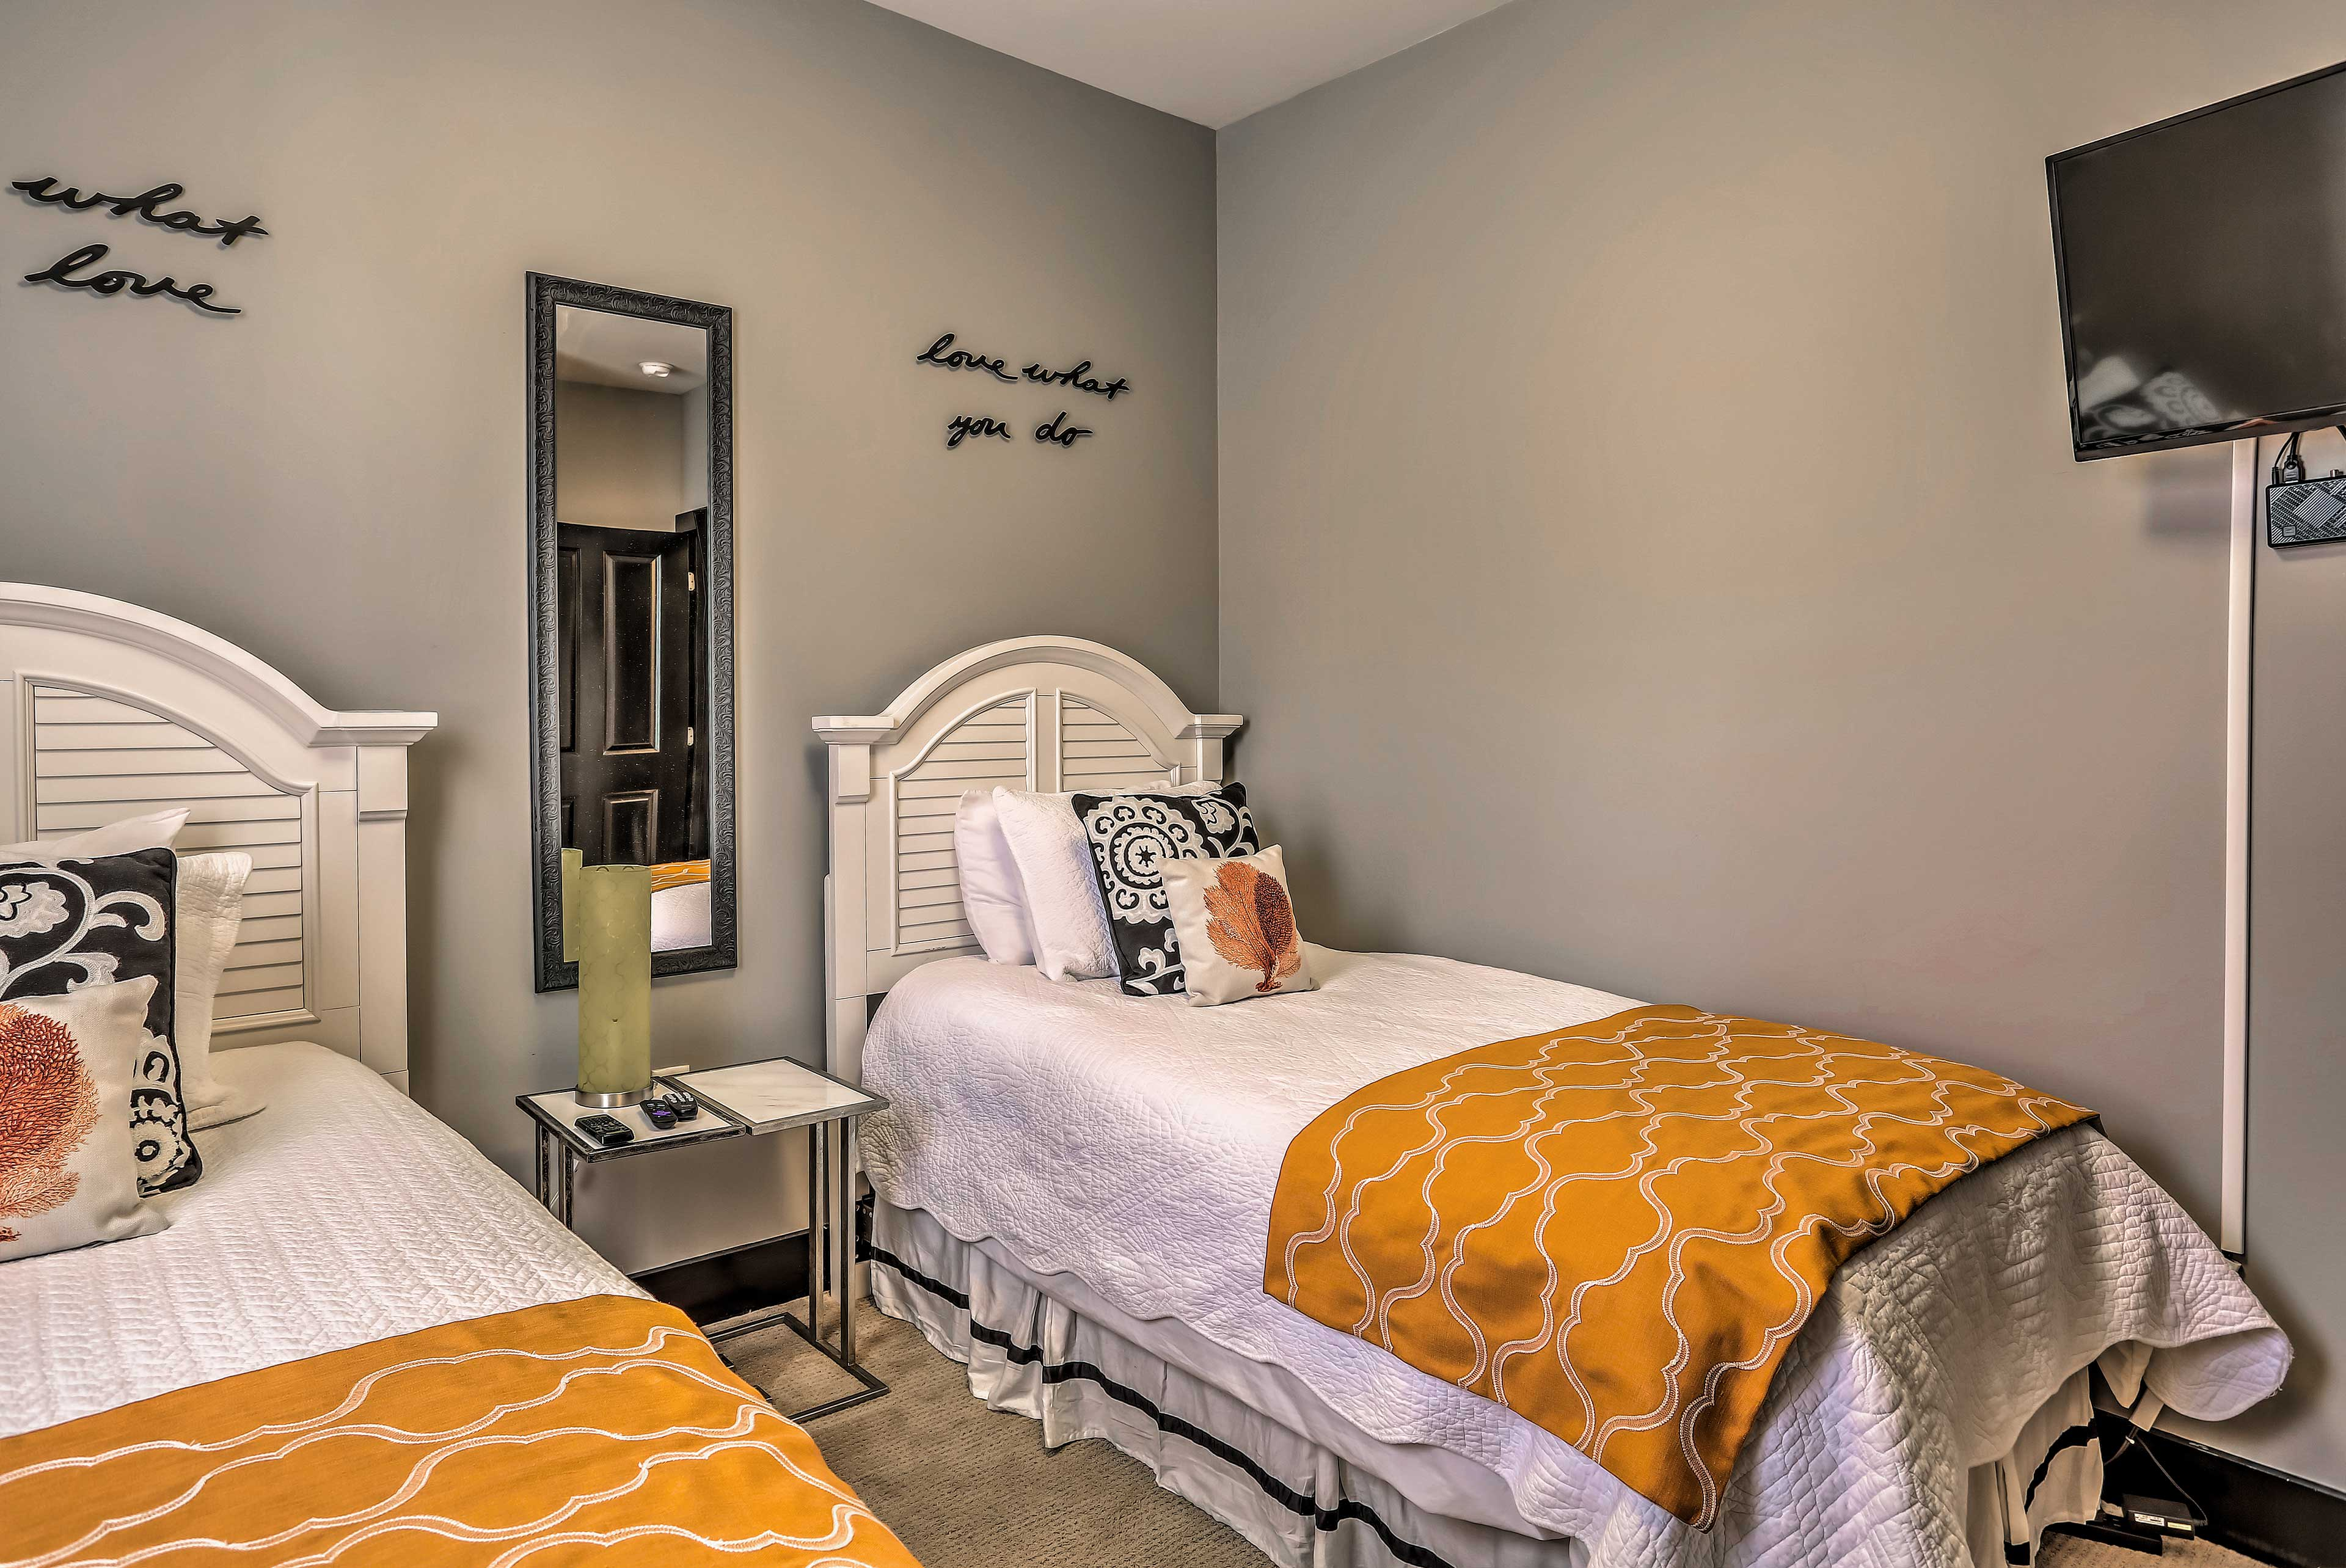 Guests in this bedroom will be able to fall asleep to their favorite shows!